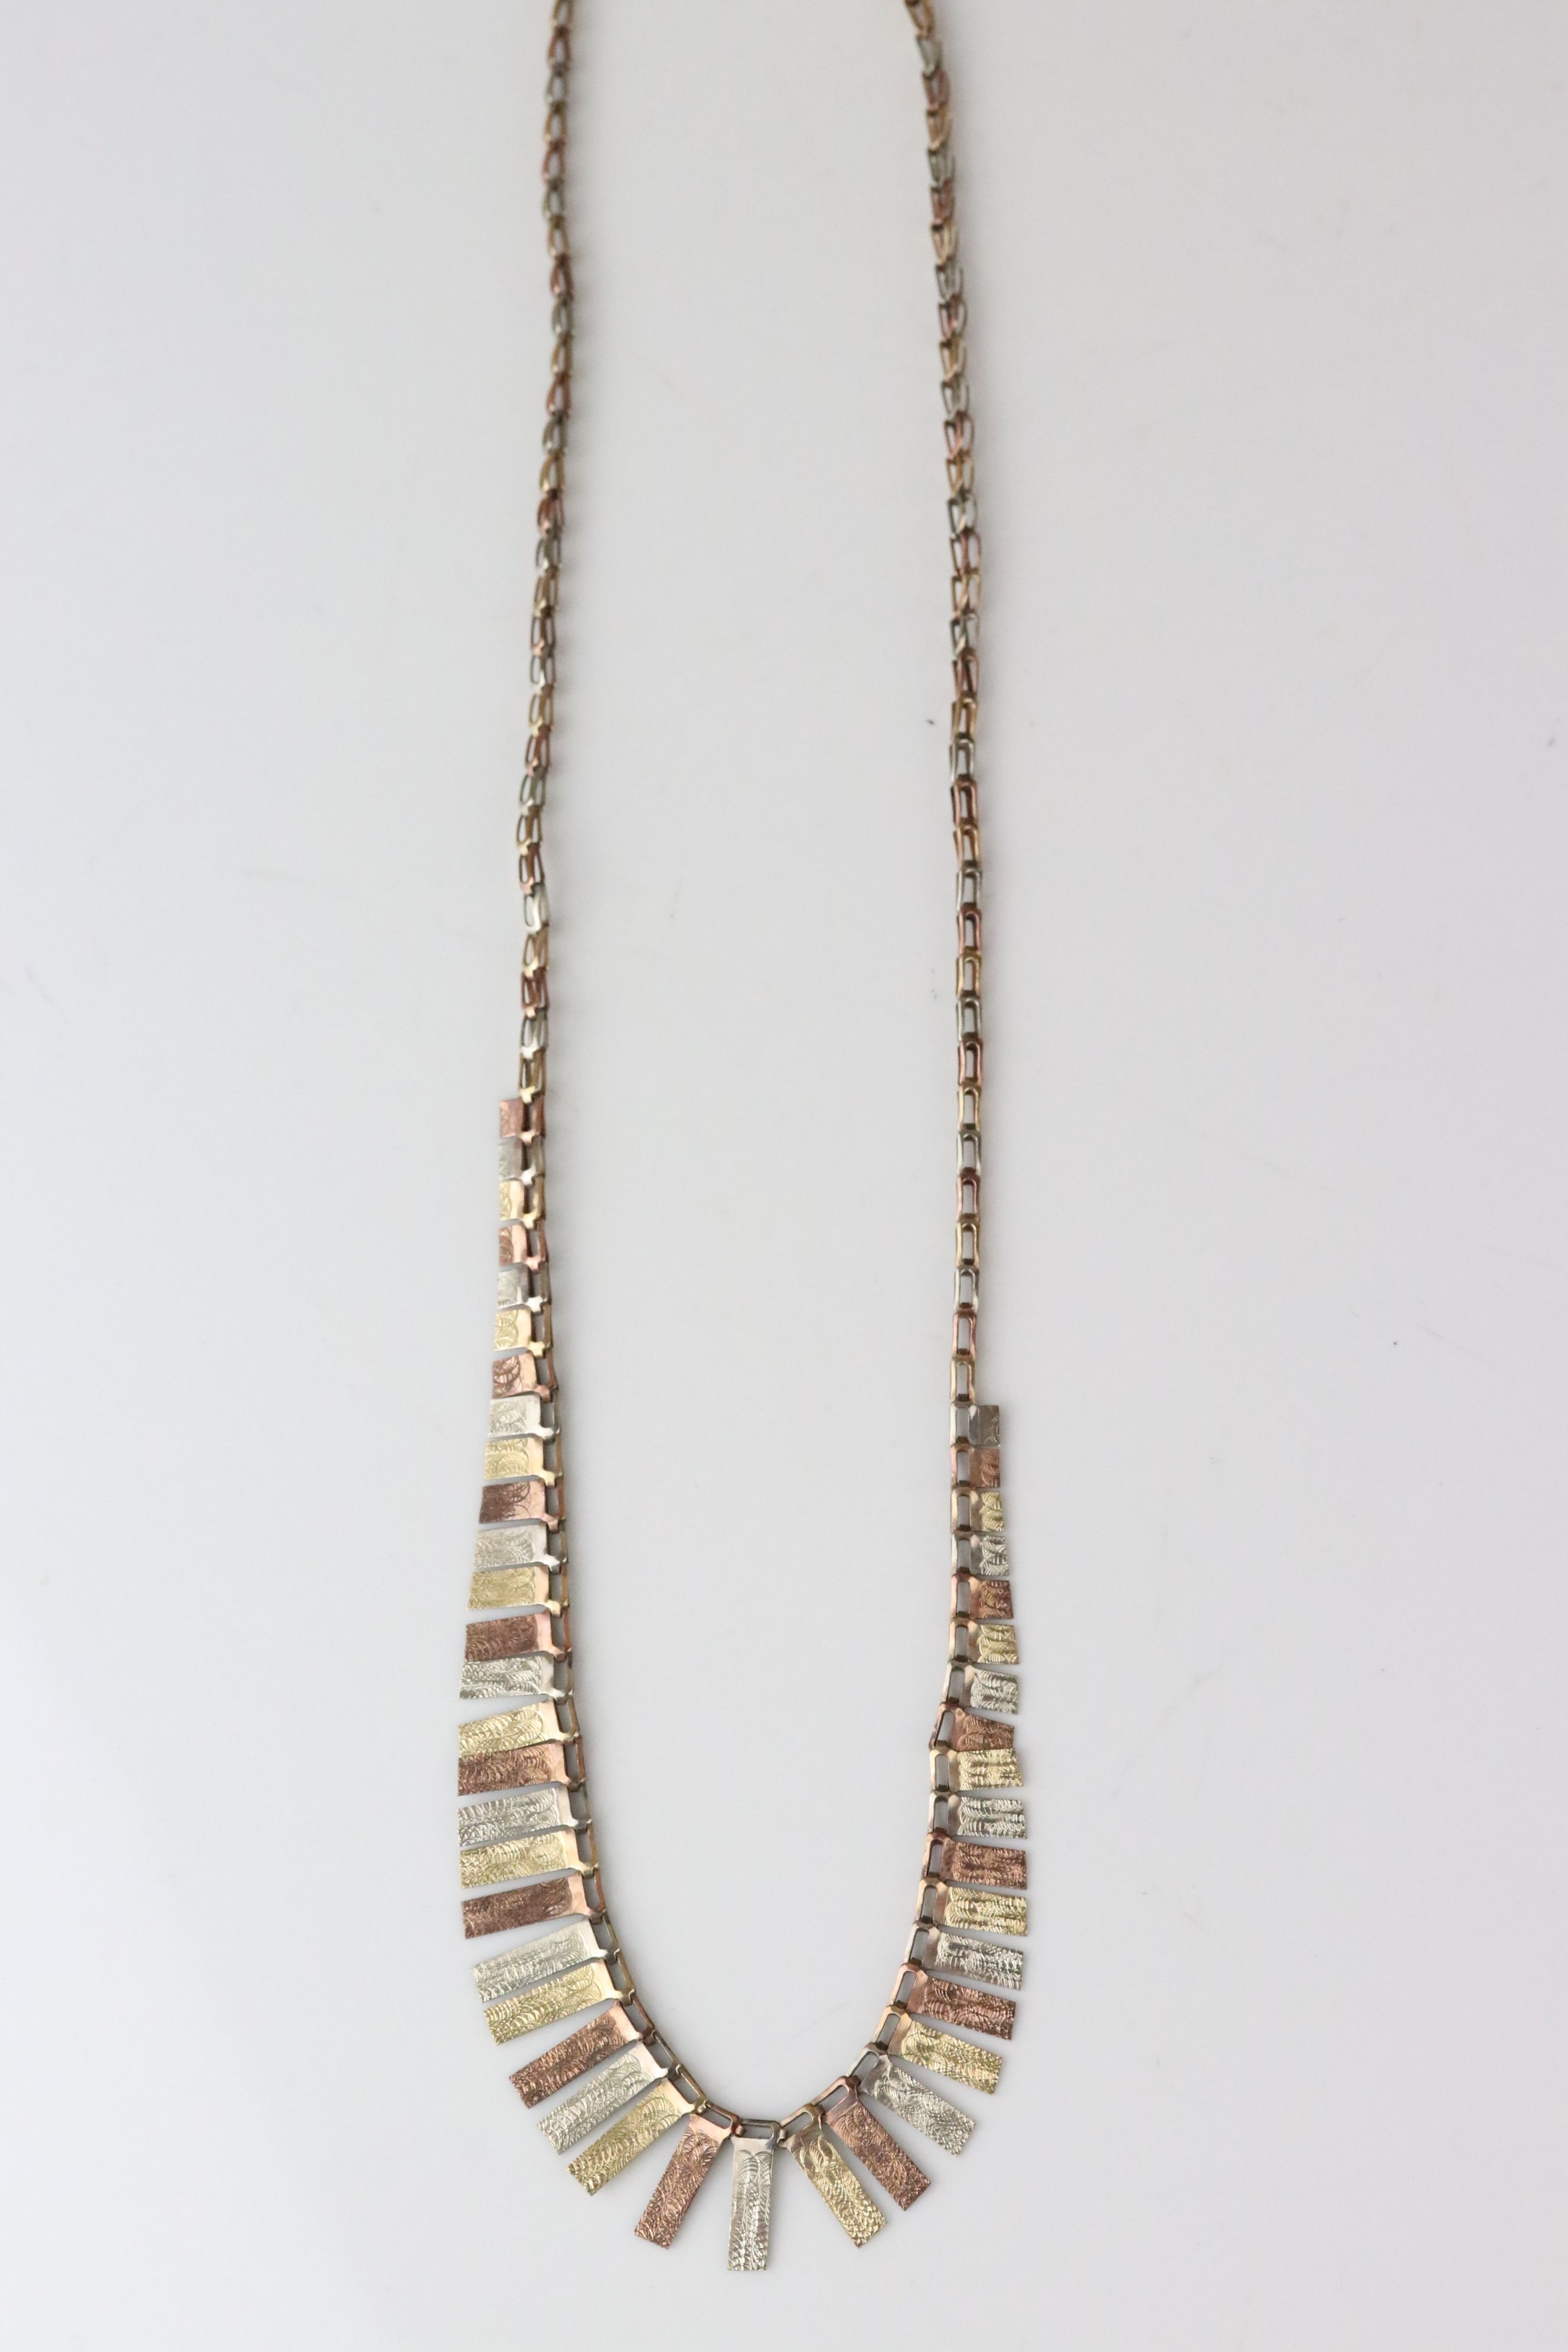 9ct tri colour gold fringe necklace, texture rose, yellow and white gold graduated panels, length